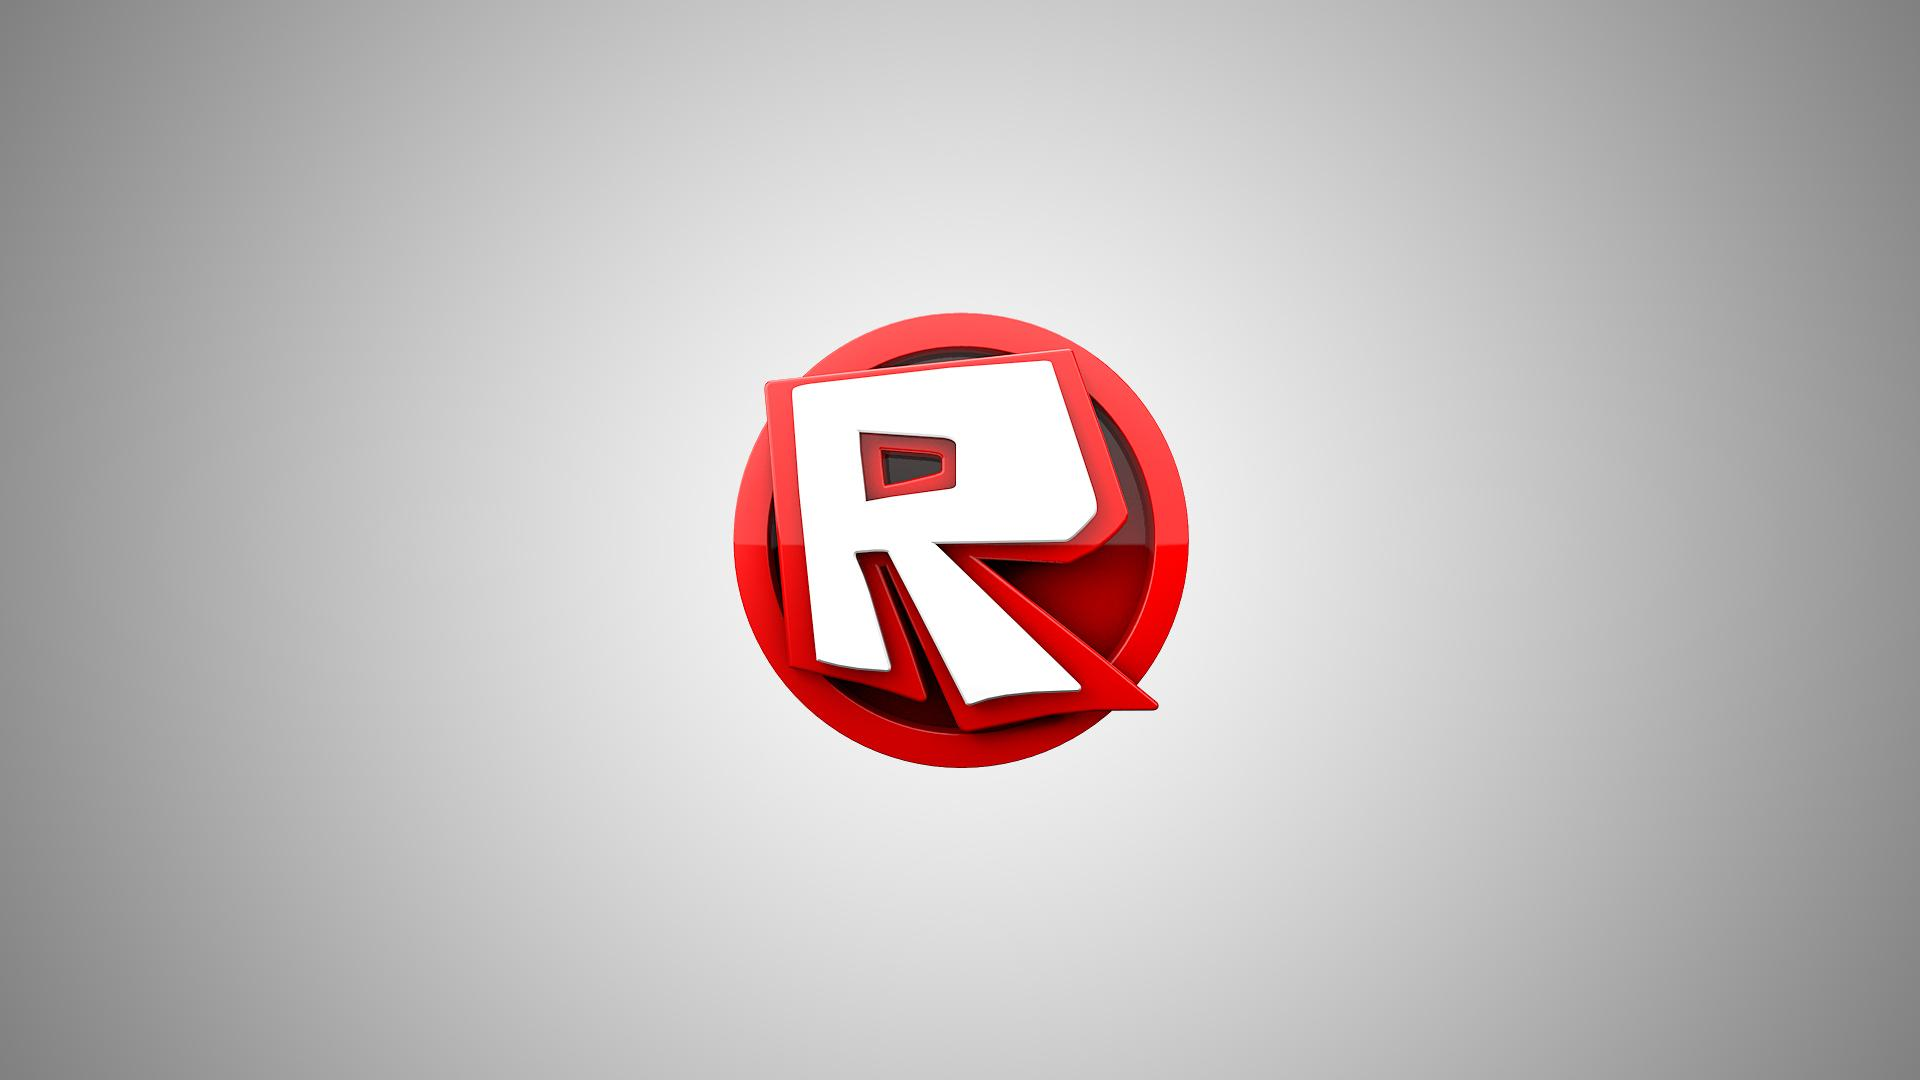 Best 35 Roblox Background On Hipwallpaper Bffs Roblox Wallpaper